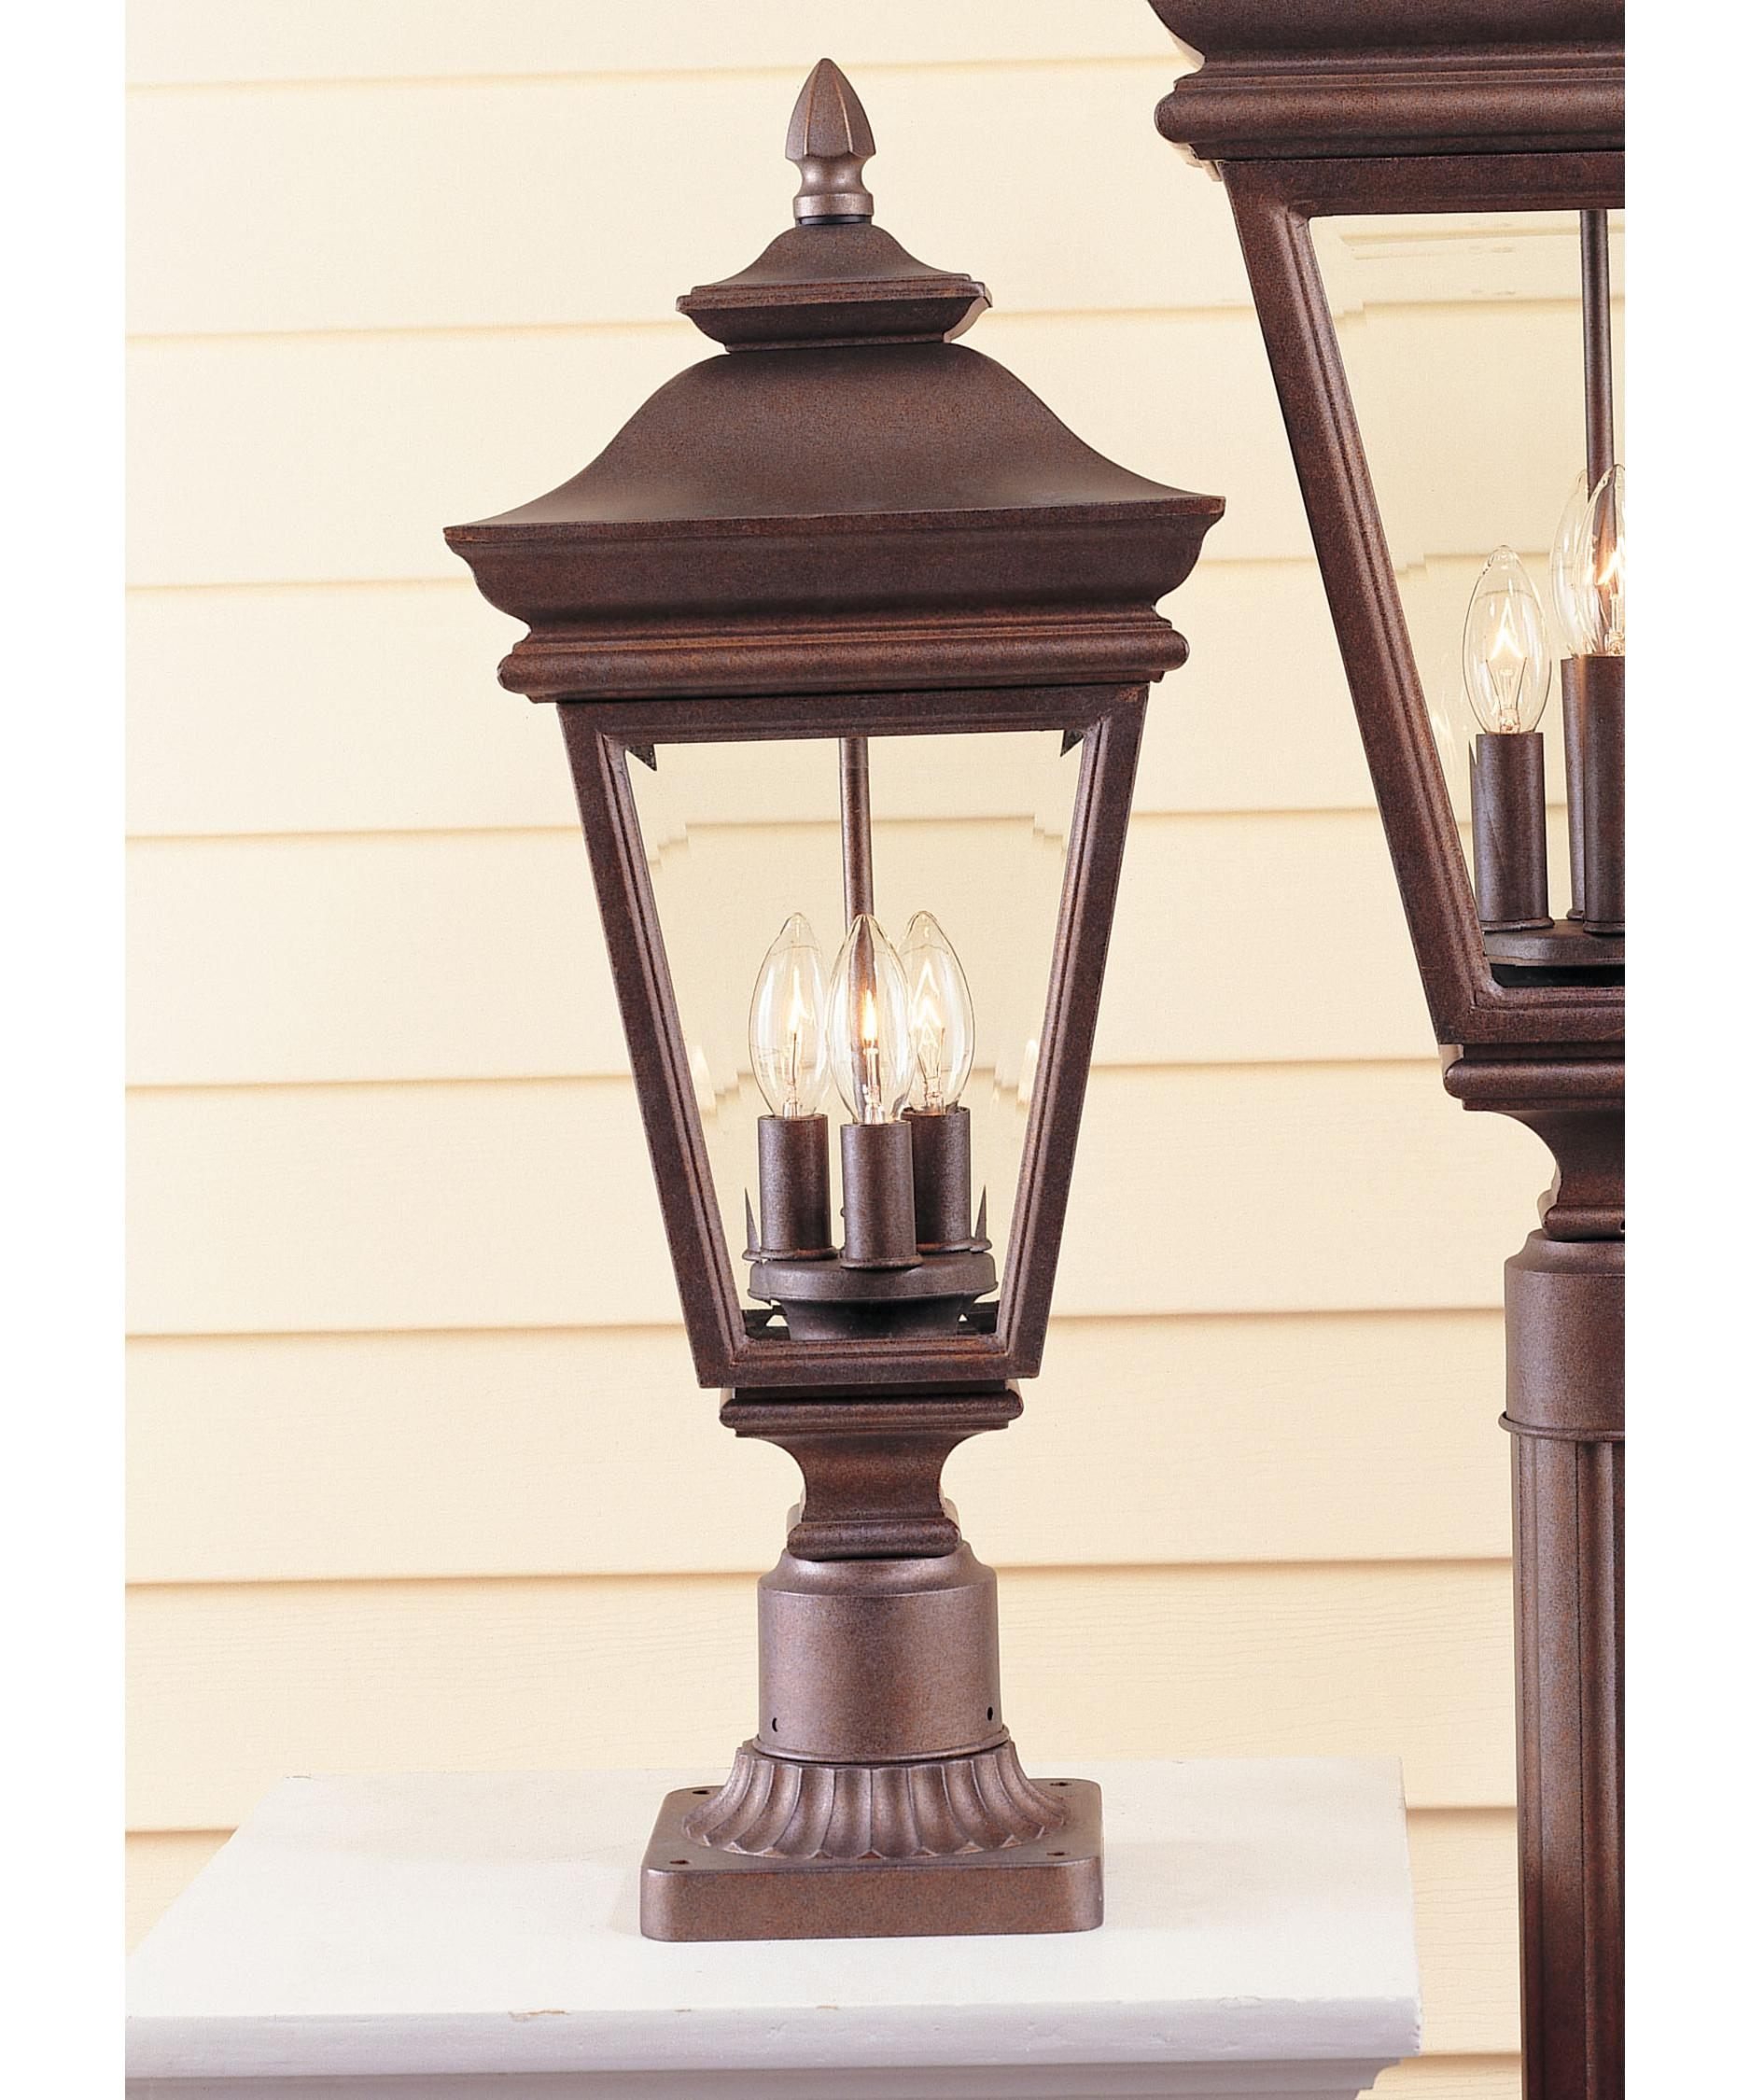 Murray Feiss Outdoor Lighting: Murray Feiss OL2707 Hampshire Court 3 Light Outdoor Post